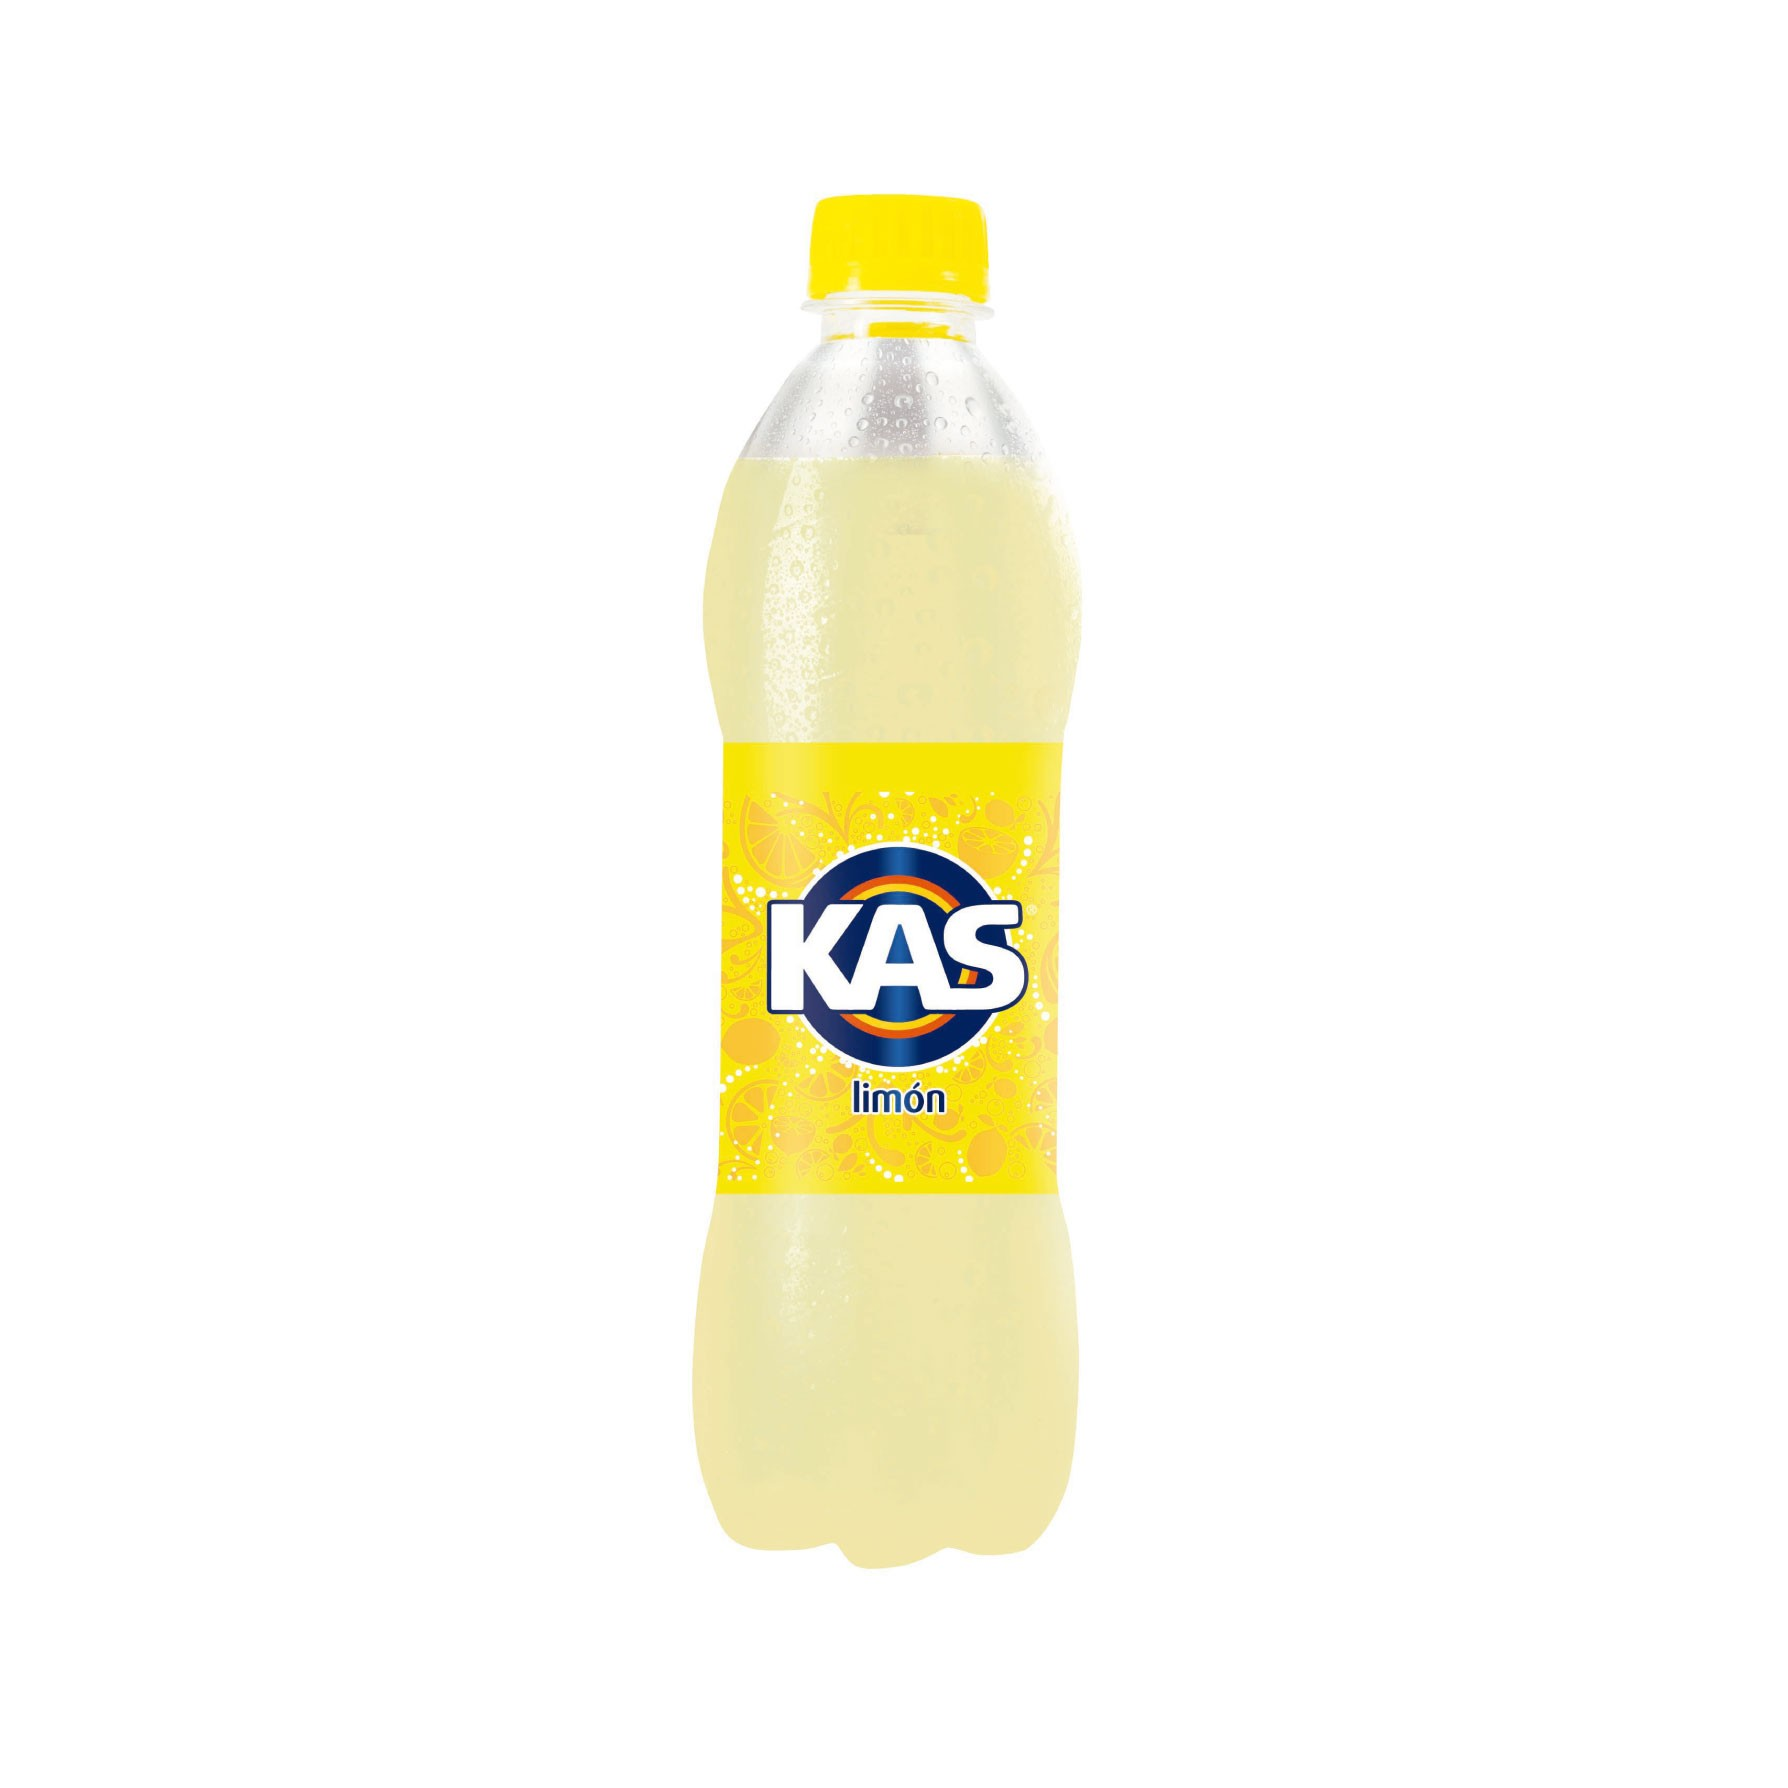 Kas refresco limon de 50cl. en botella